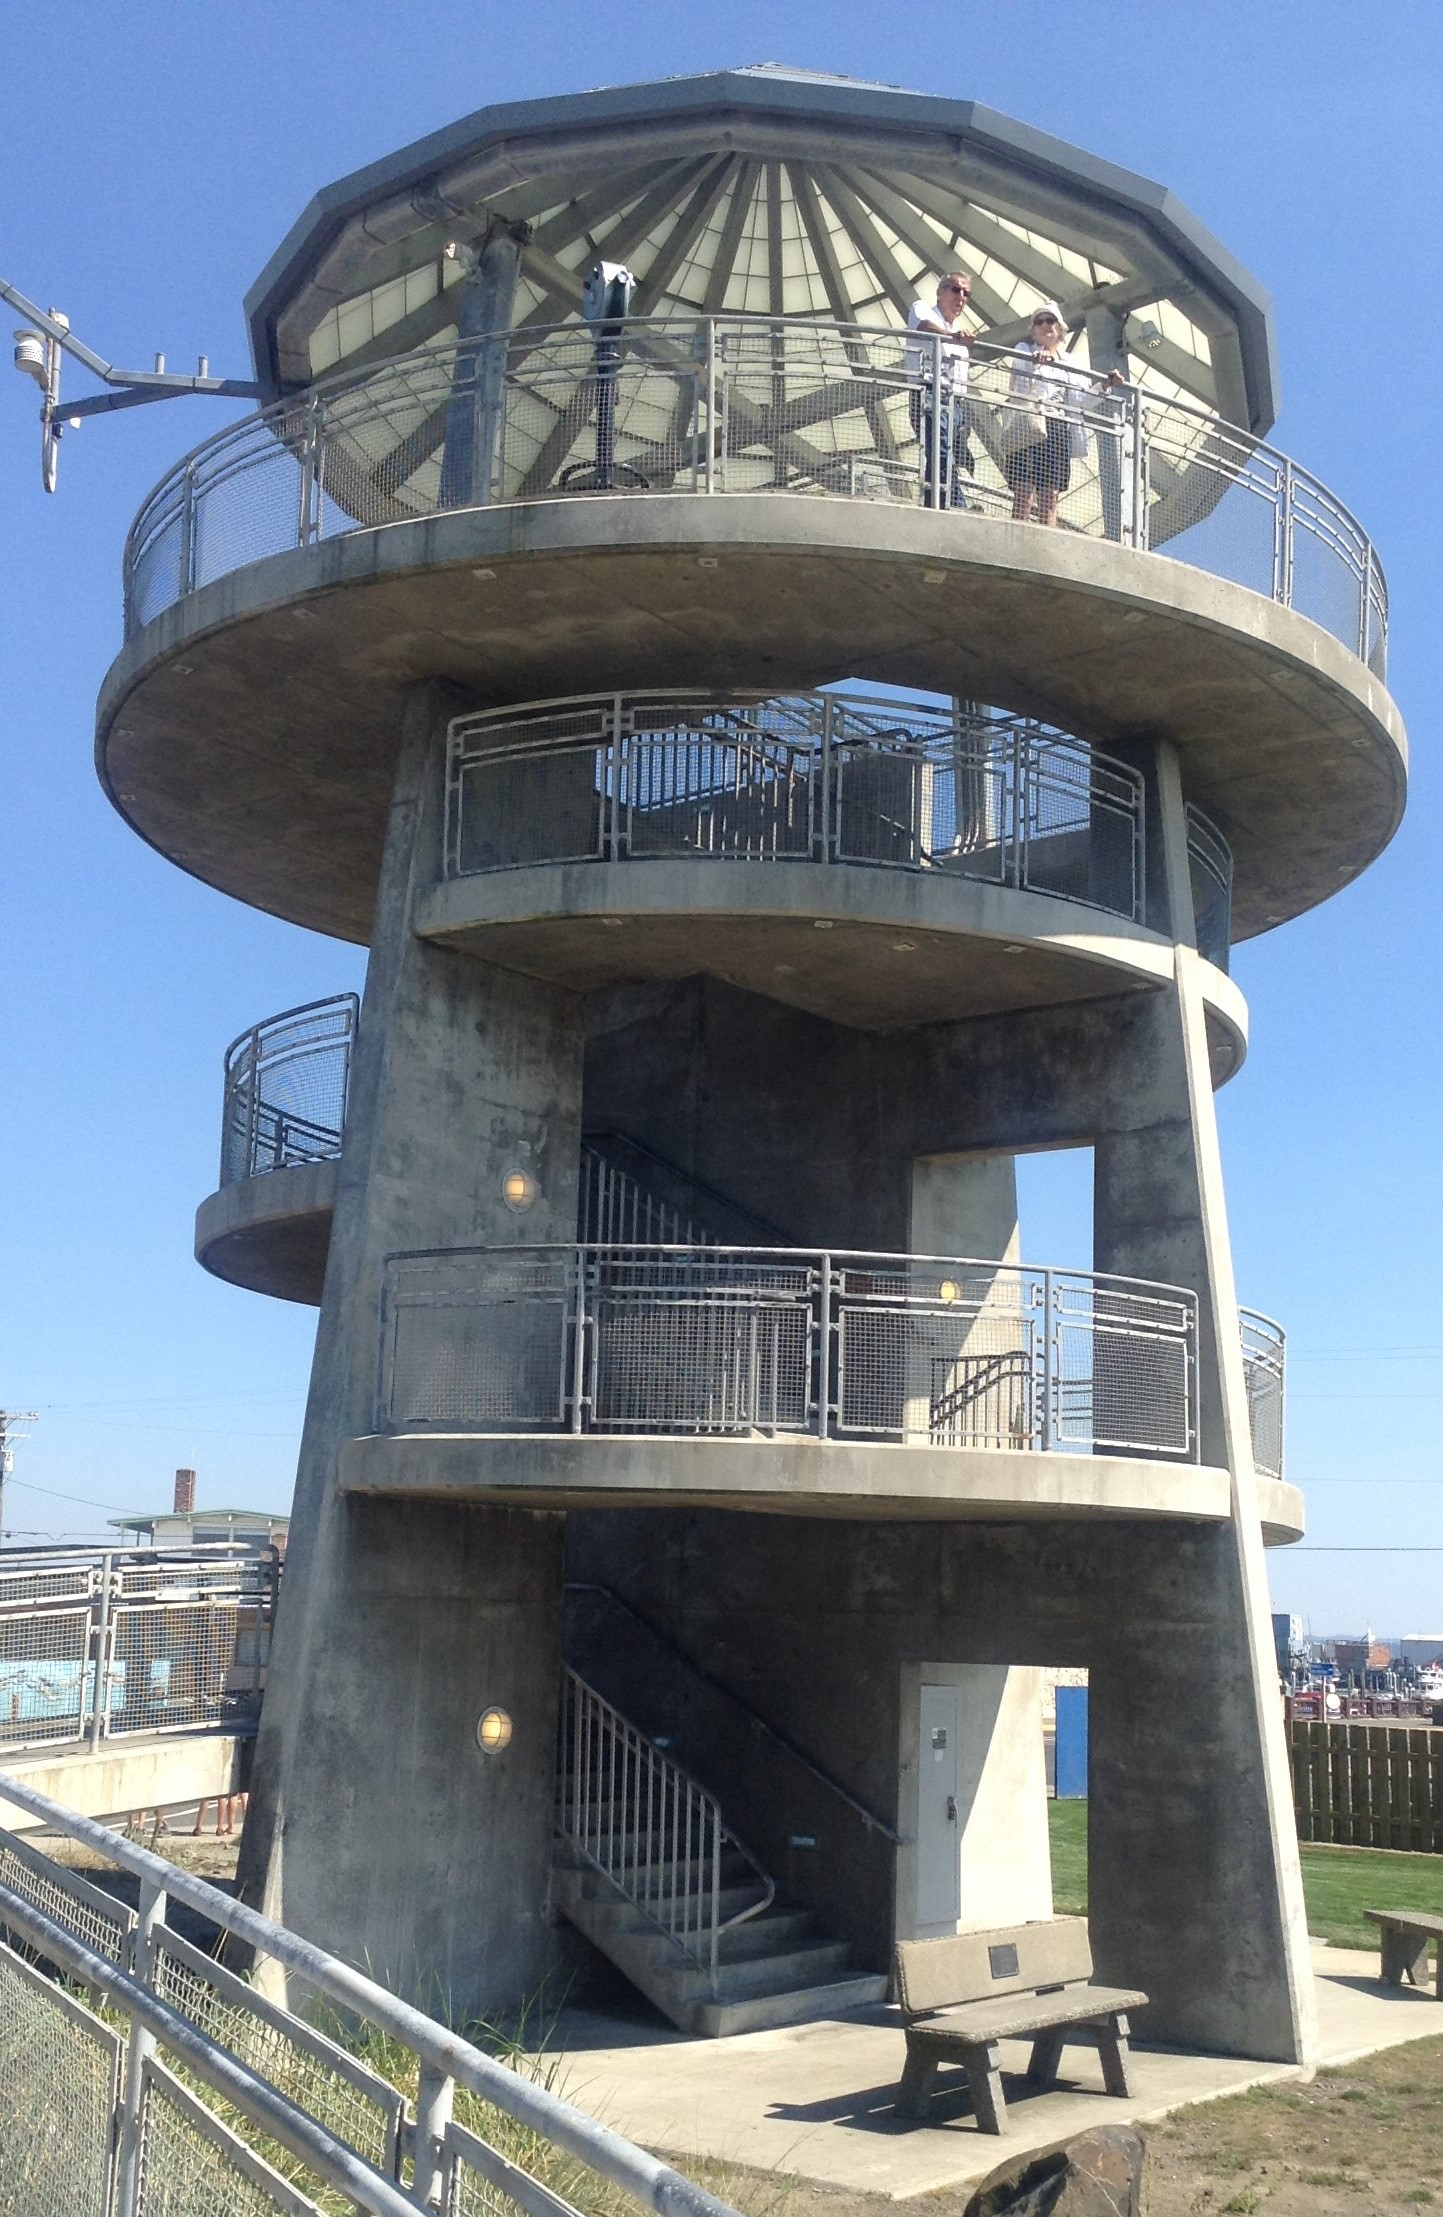 Westport's Viewing Tower